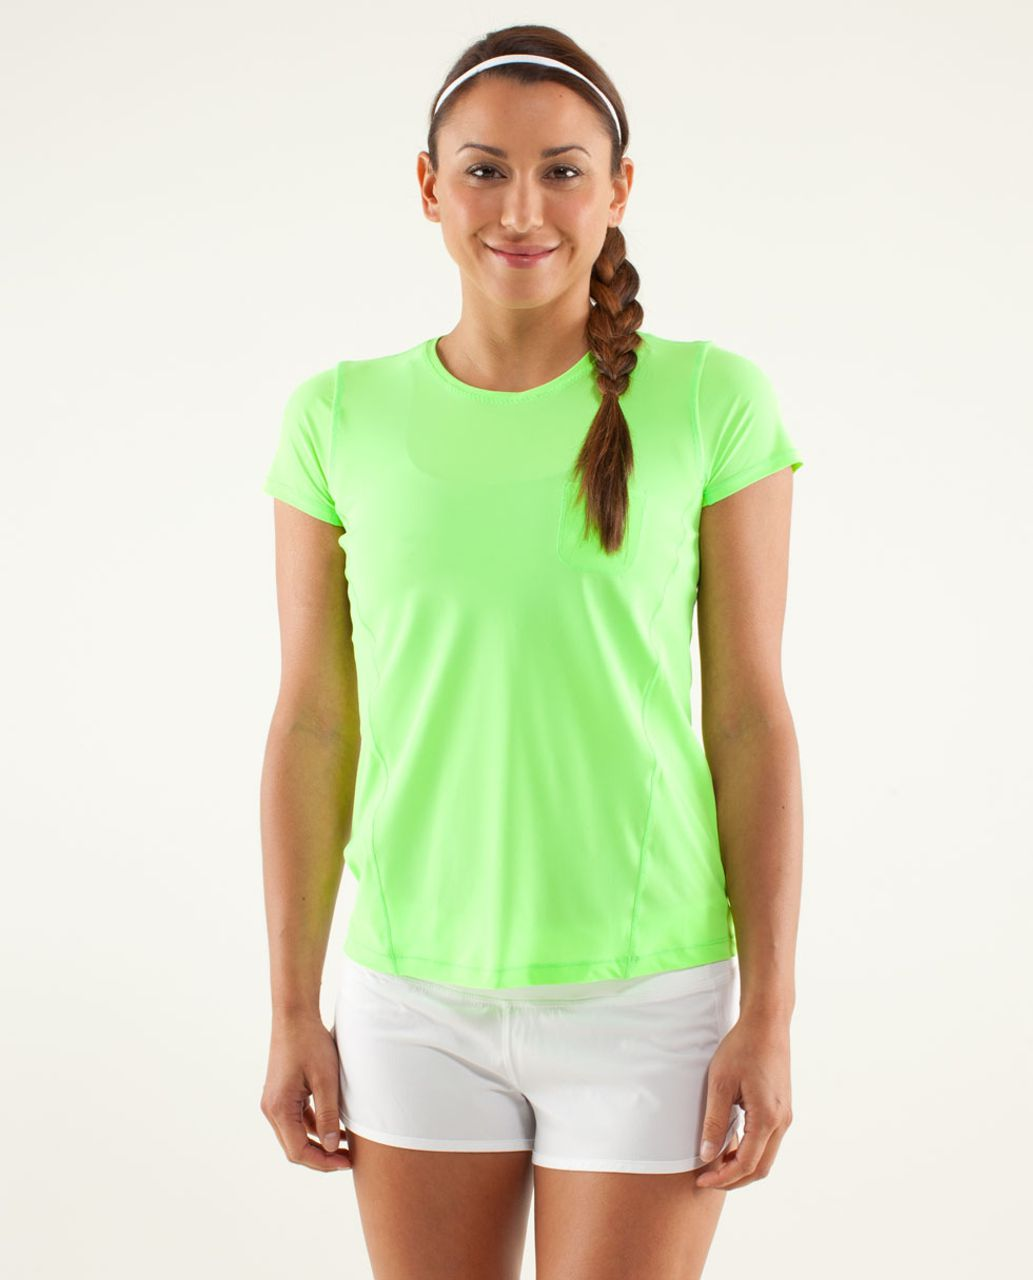 Lululemon Runbeam Short Sleeve - Zippy Green